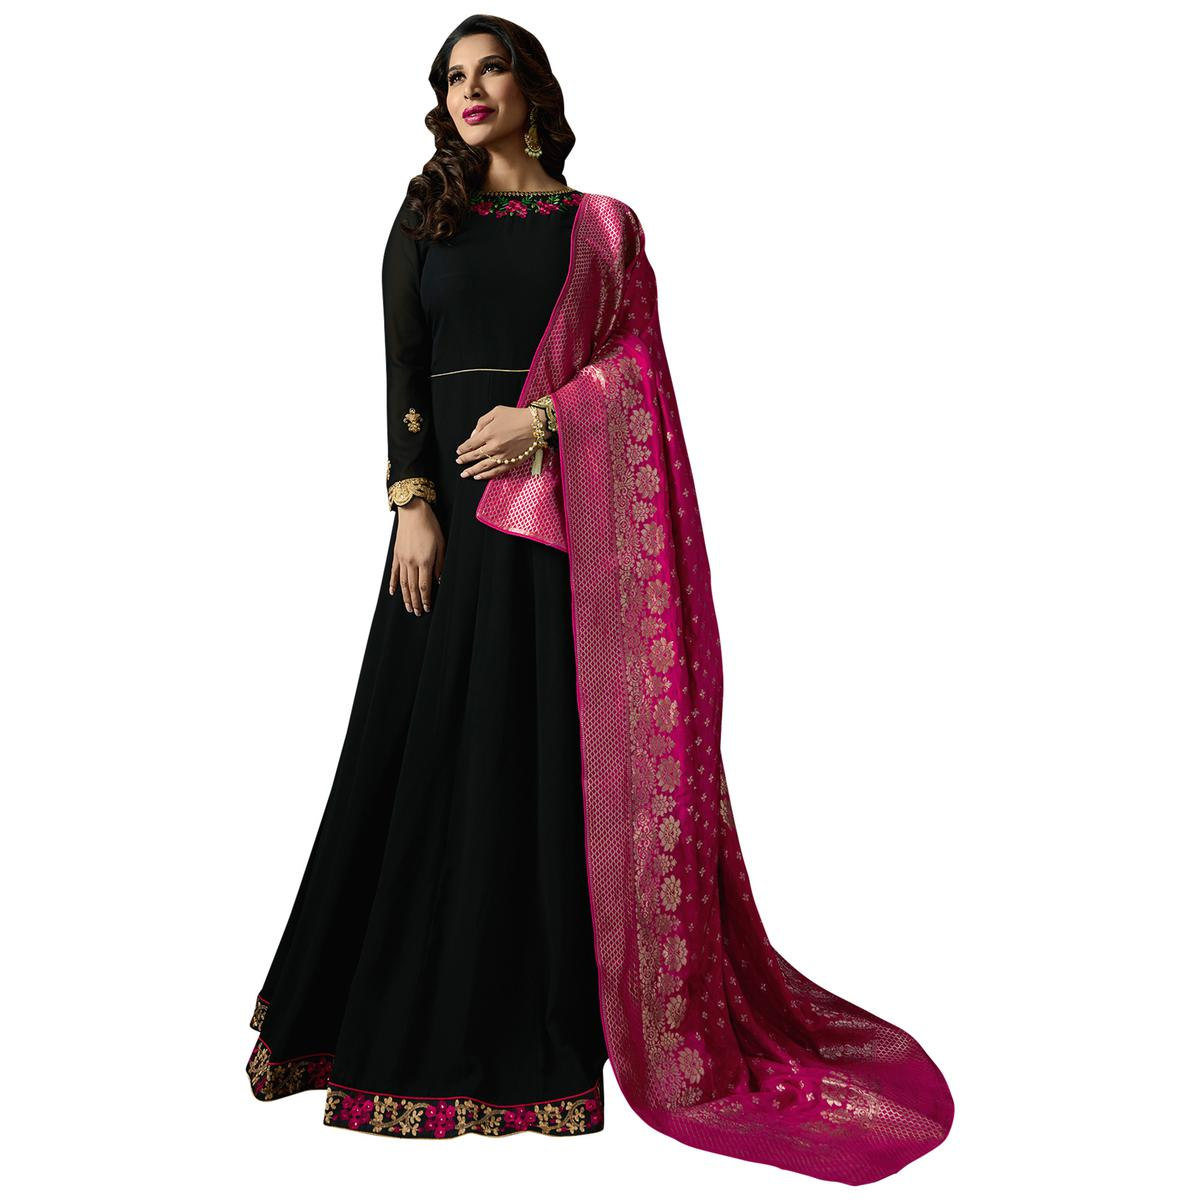 Hypnotic Black Colored Embroidered Georgette Anarkali Suit With Pure Banarasi Silk Dupatta